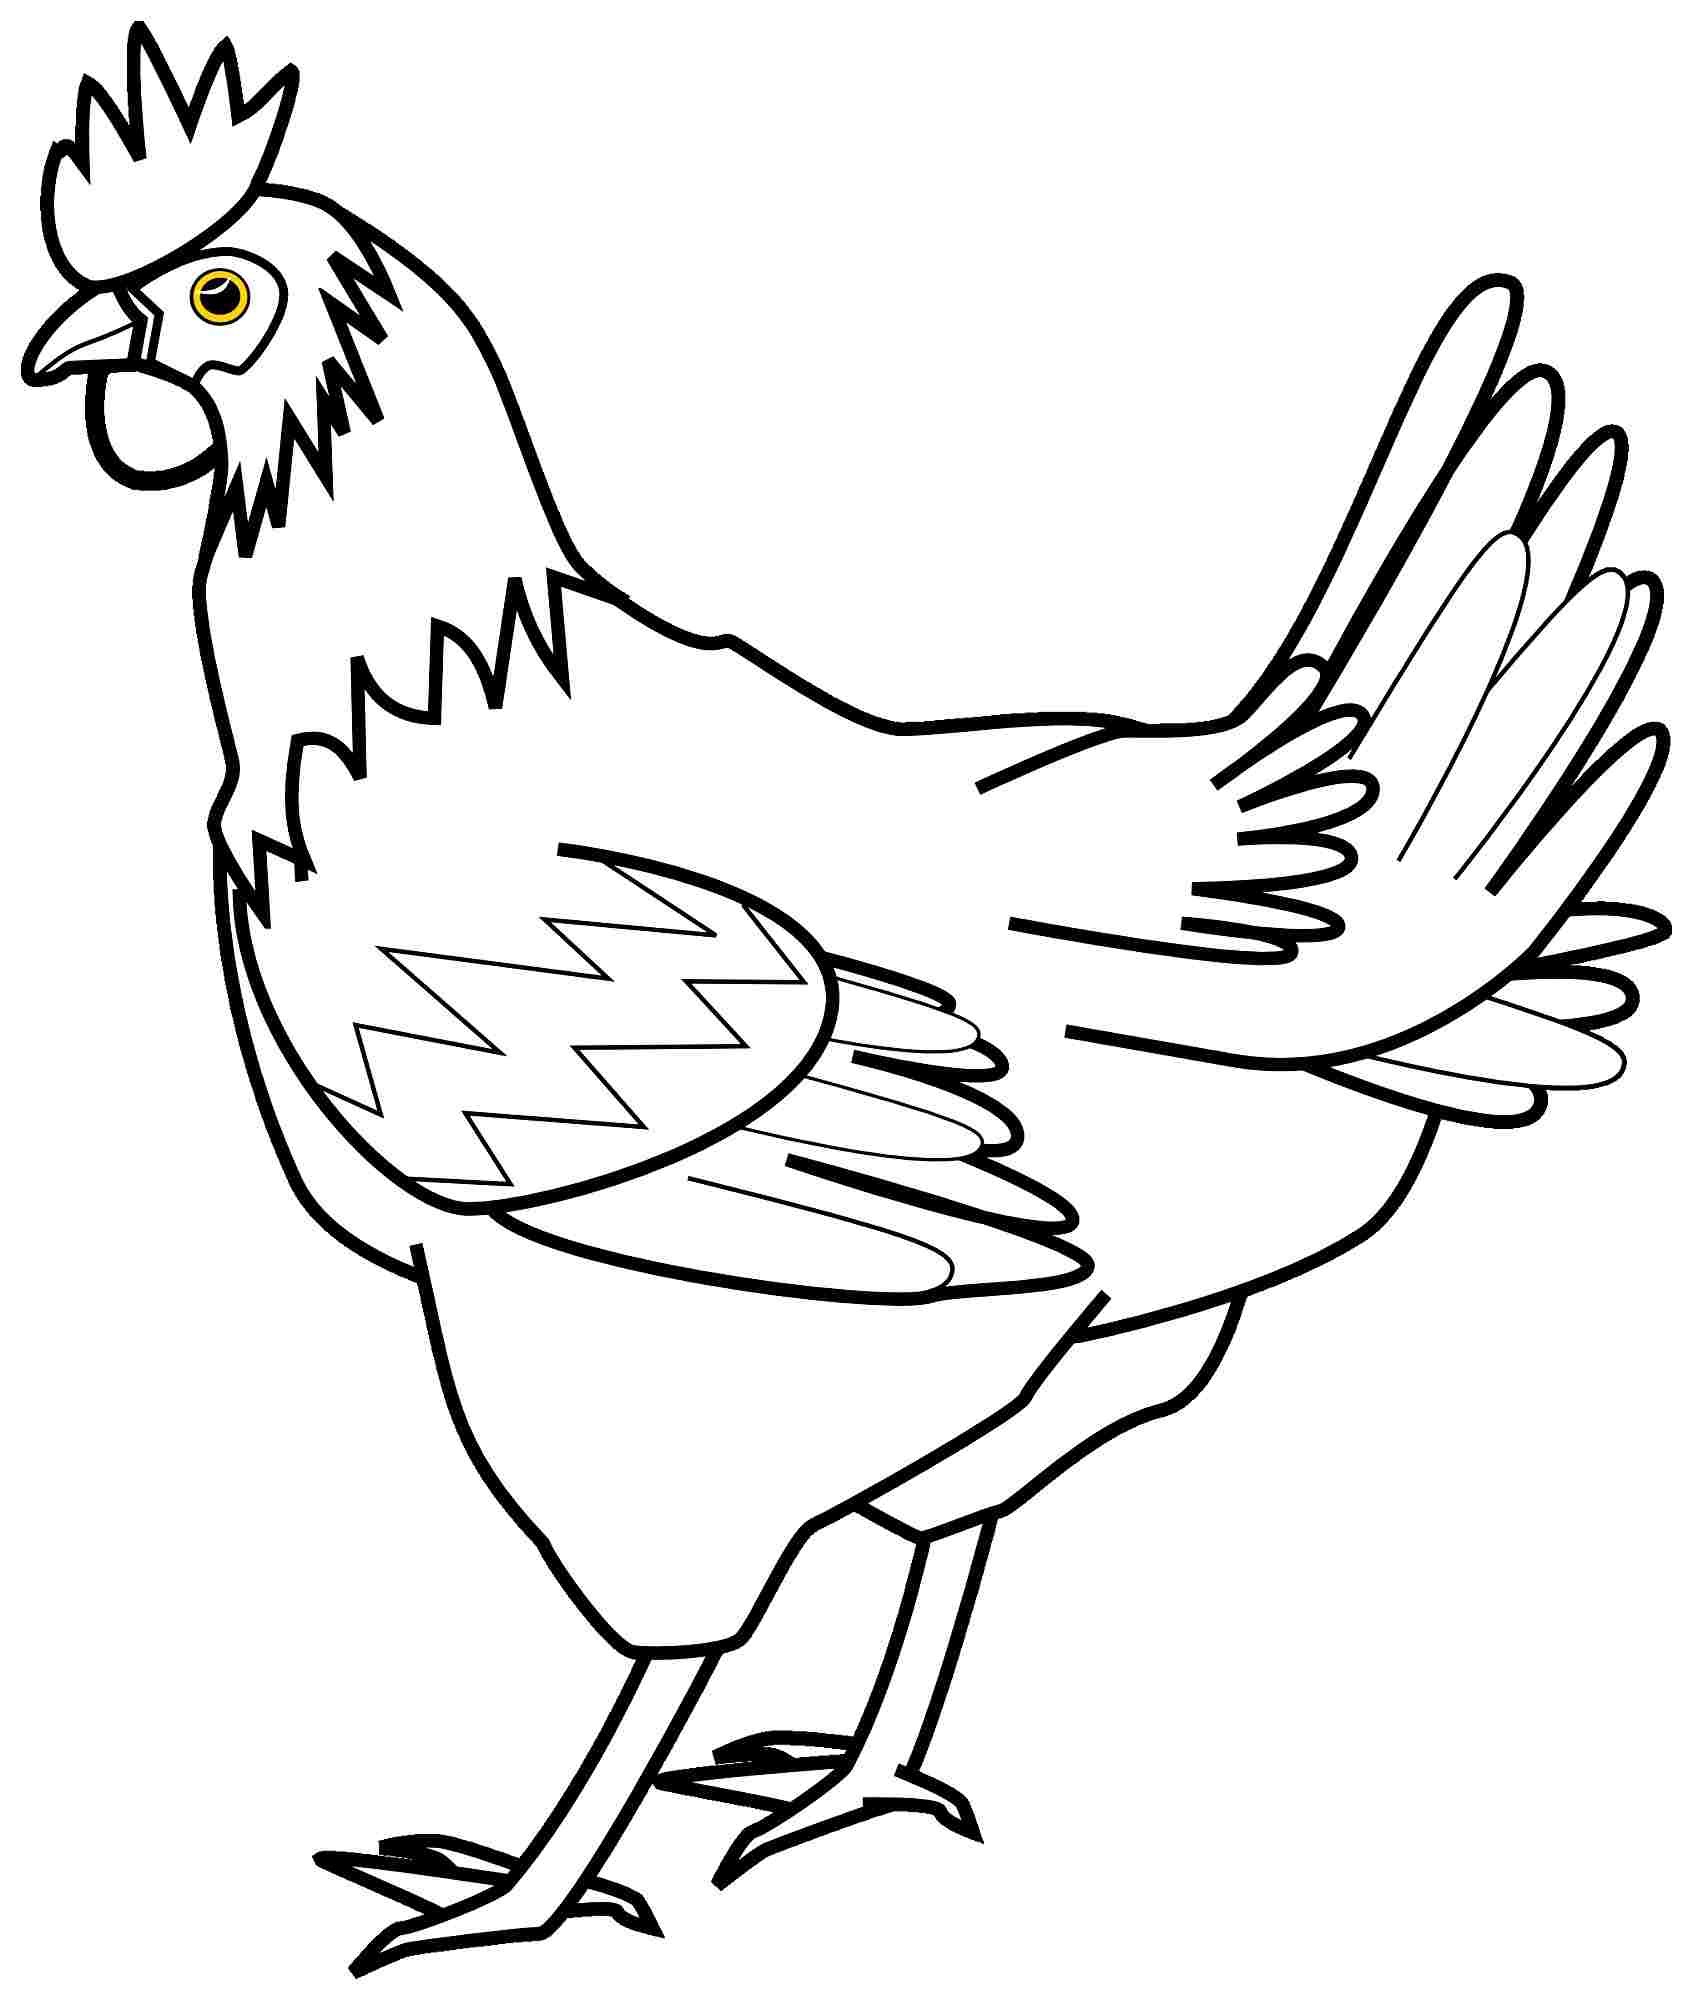 how to draw a chicken learn how to draw chicken and chicks animals for kids to chicken how draw a